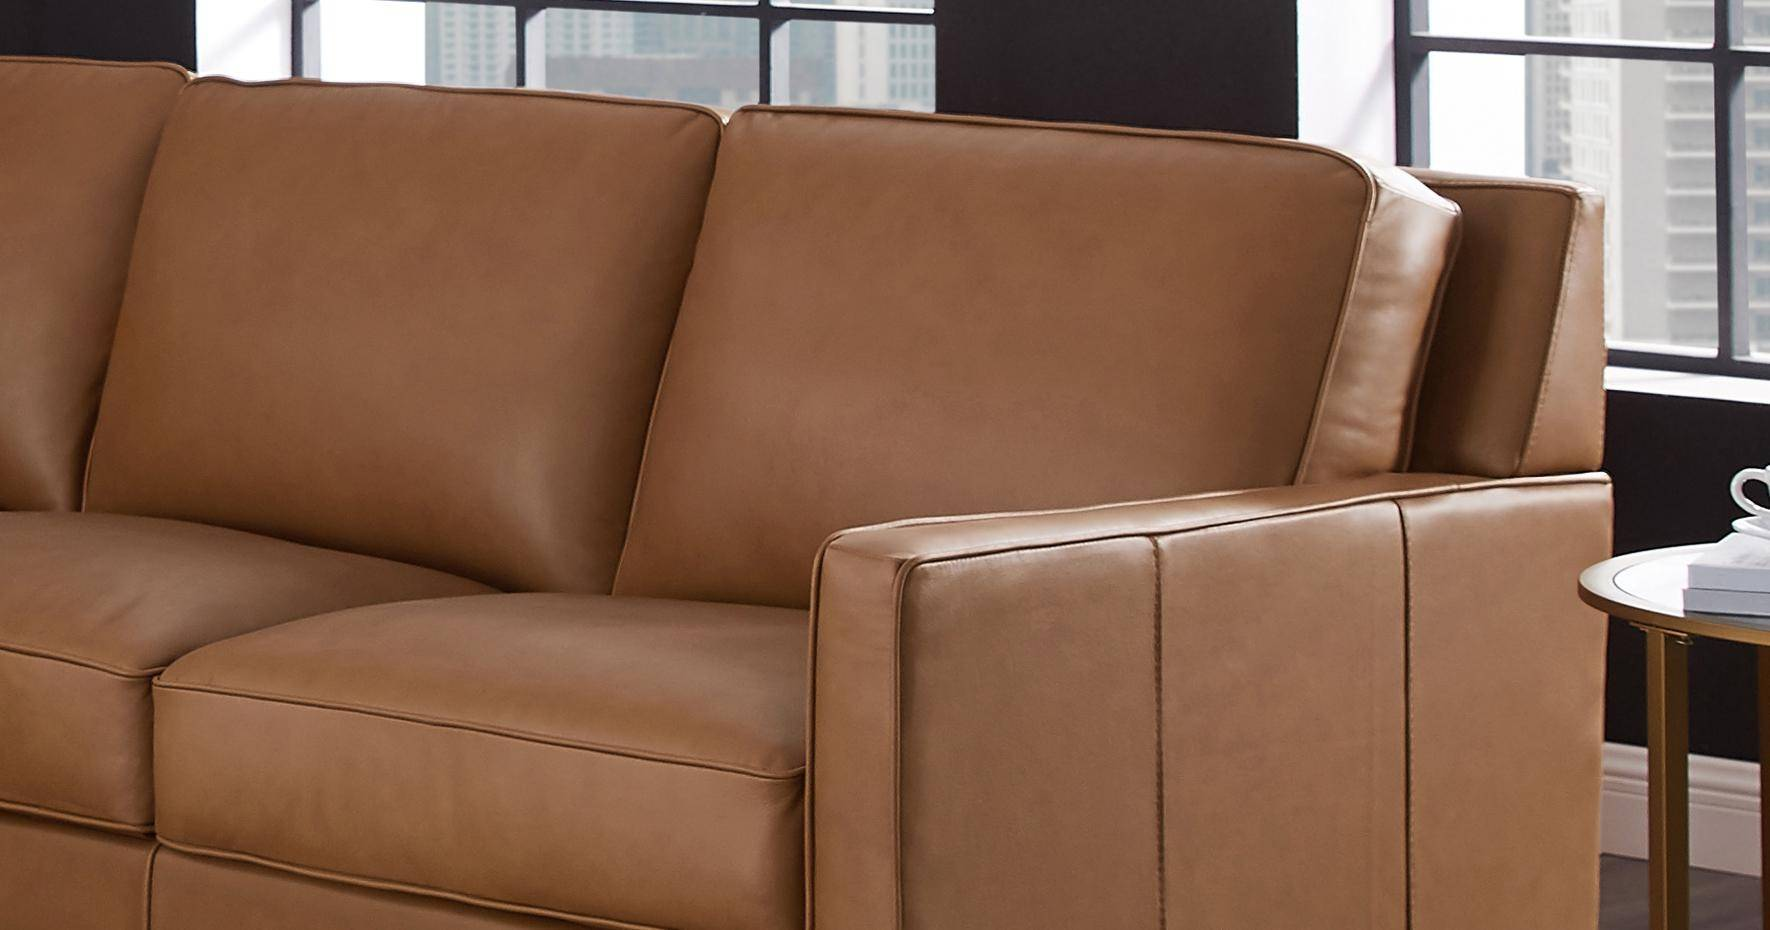 Stupendous Cognac Top Grain Leather Sectional San Francisco Hydeline Pabps2019 Chair Design Images Pabps2019Com